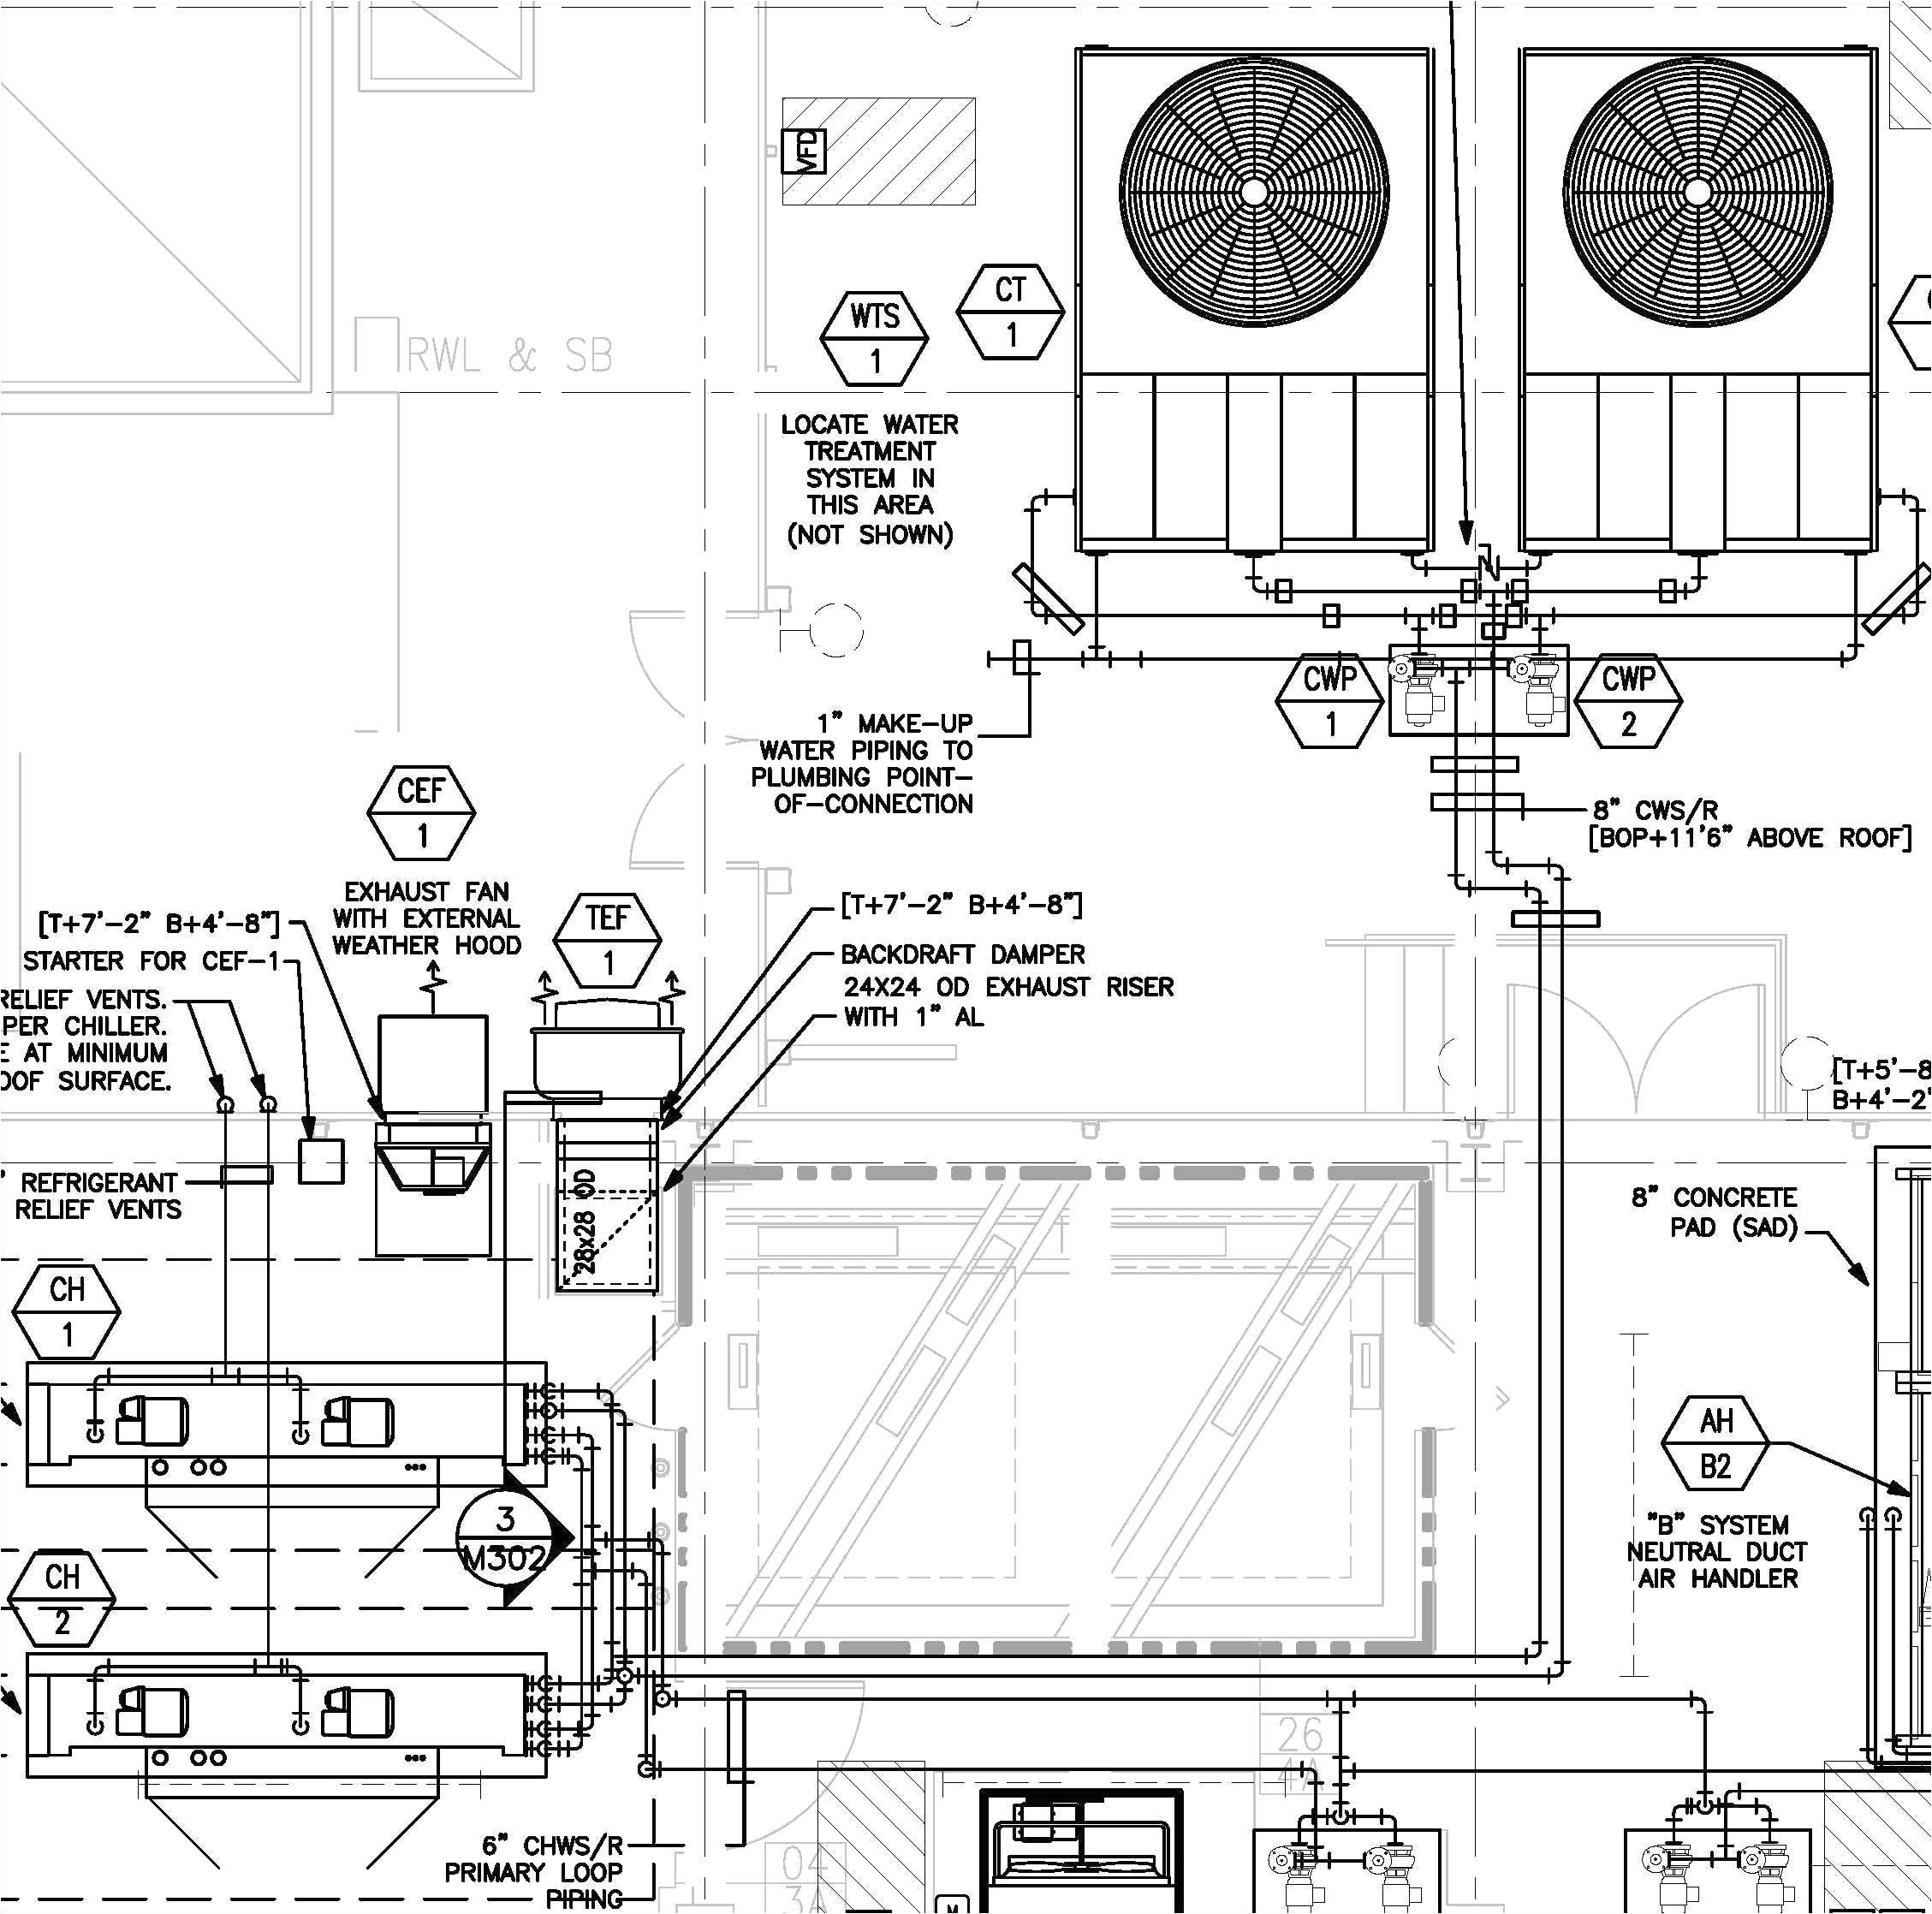 5 best images of basic electrical wiring diagrams bathroom wiring 5 best images of basic electrical wiring diagrams bathroom